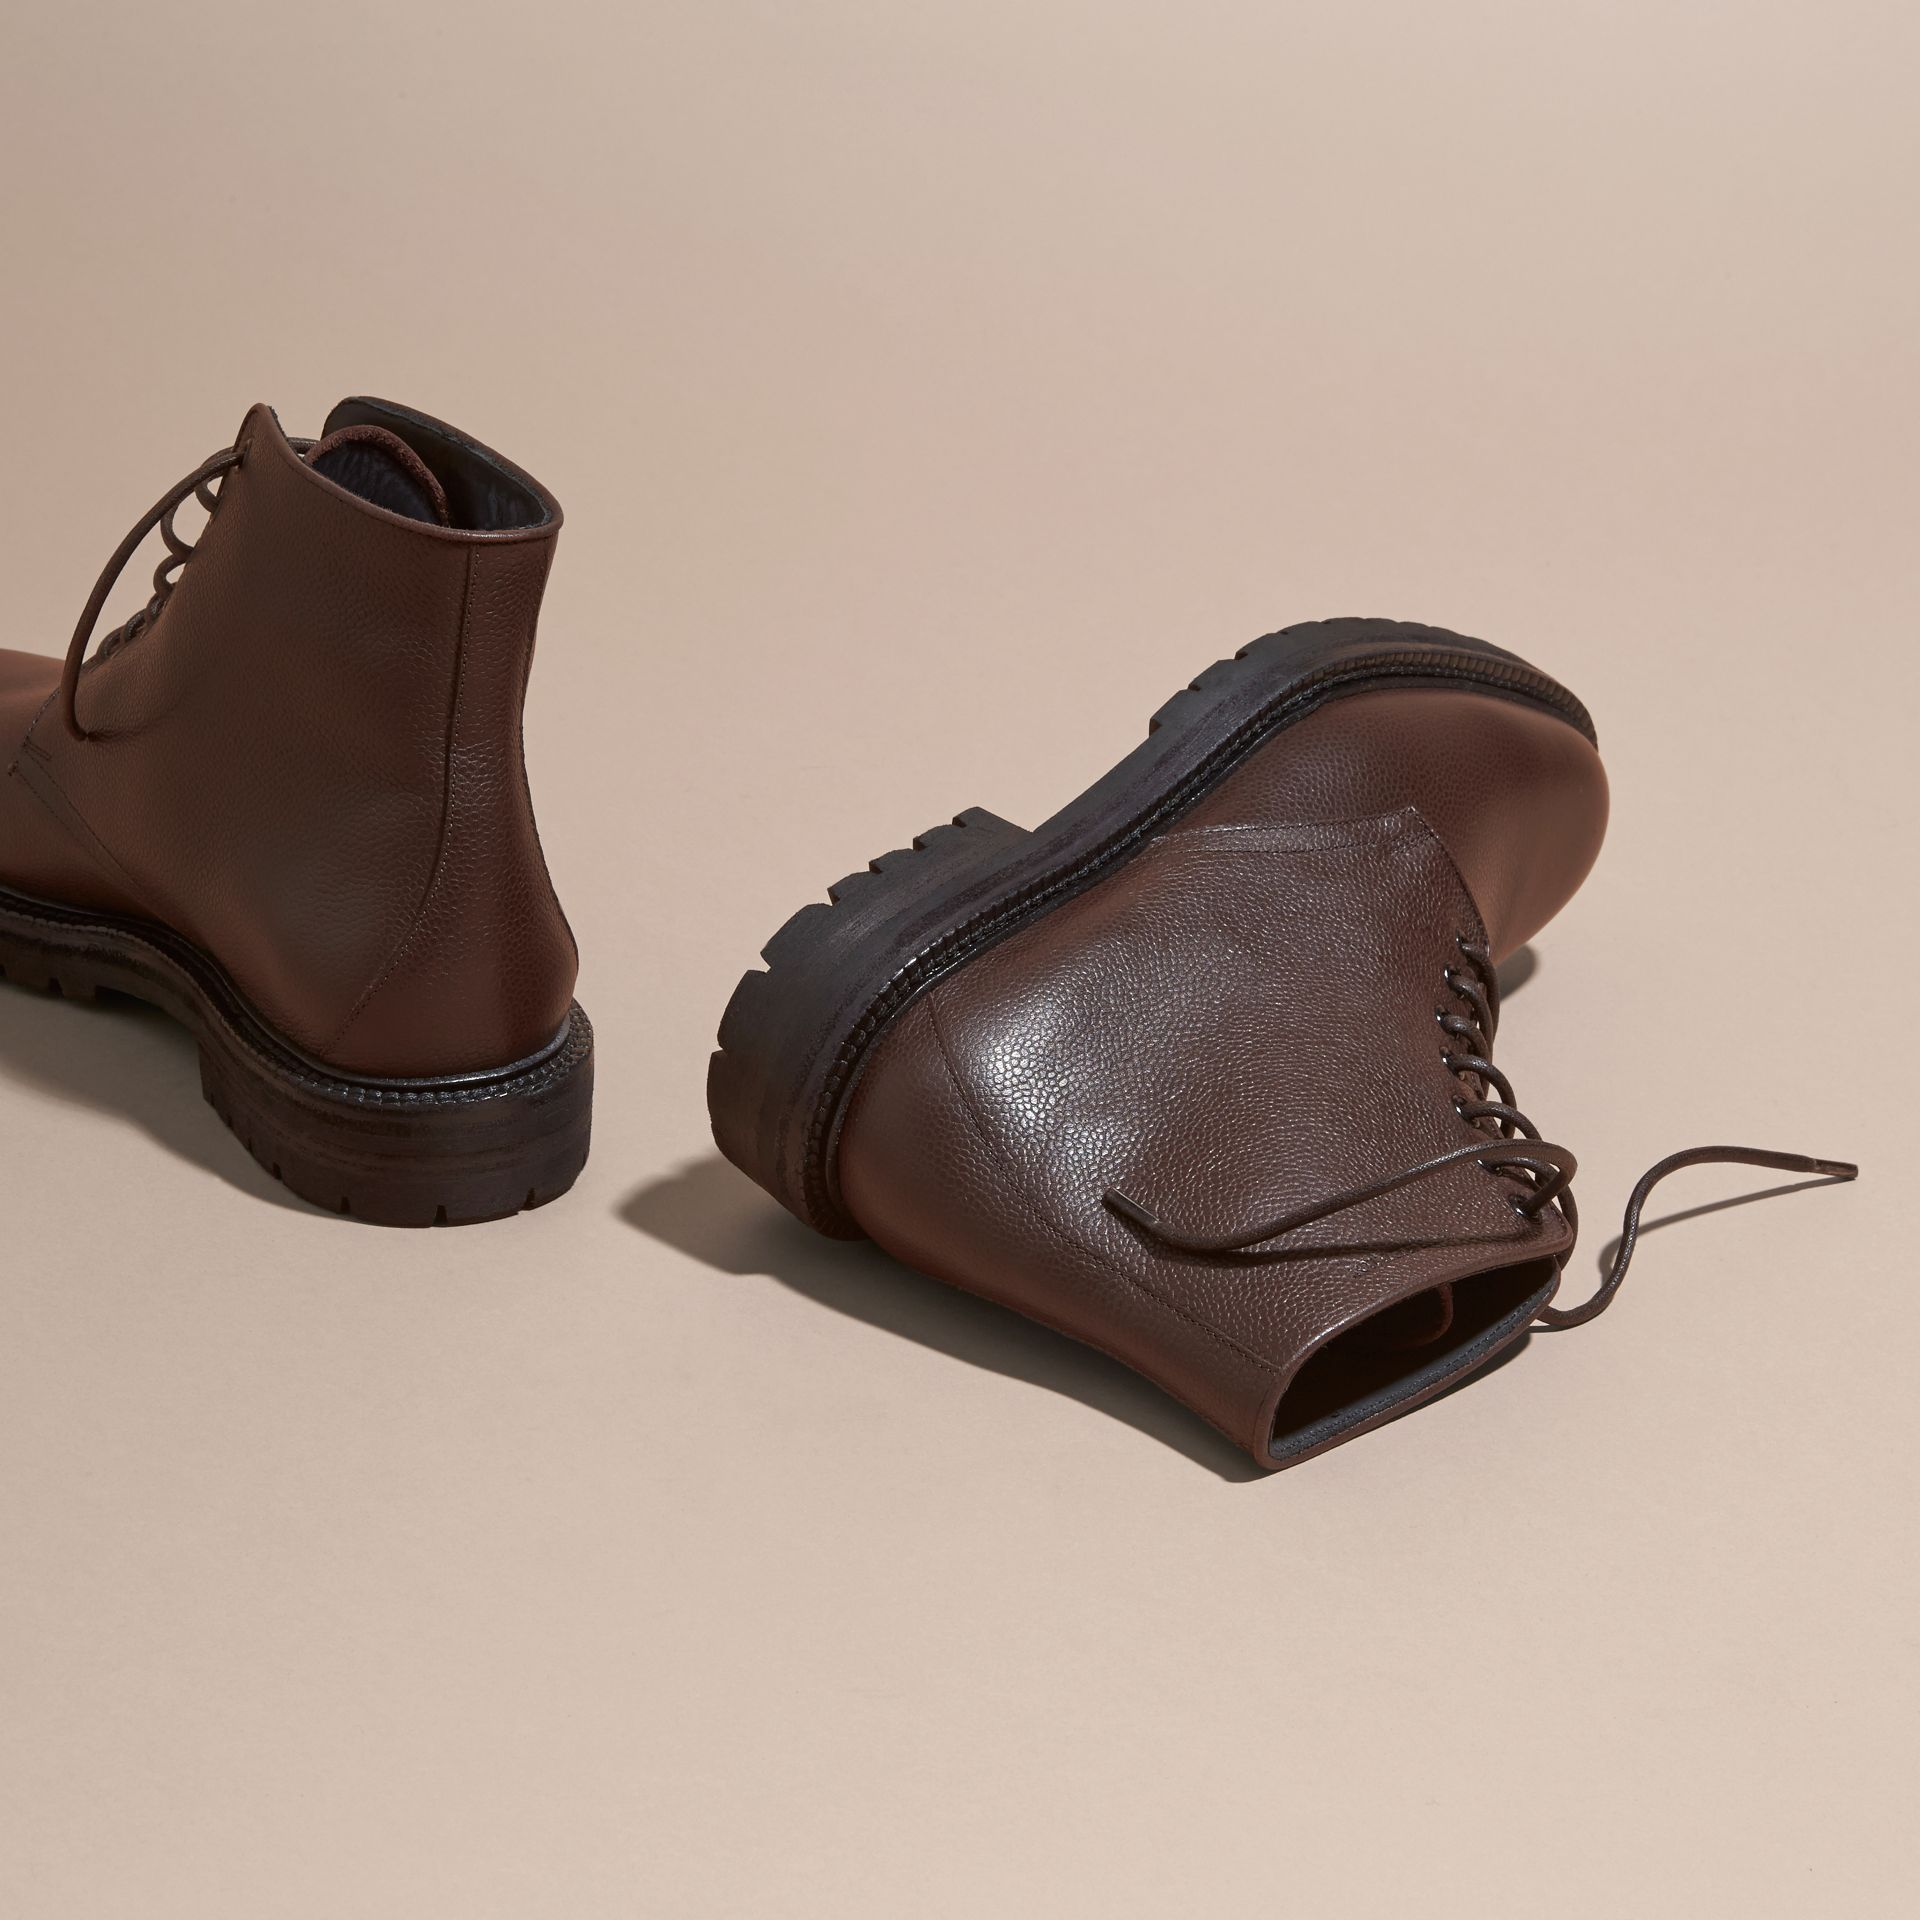 Chestnut Lace-up Grainy Leather Boots Chestnut - gallery image 4